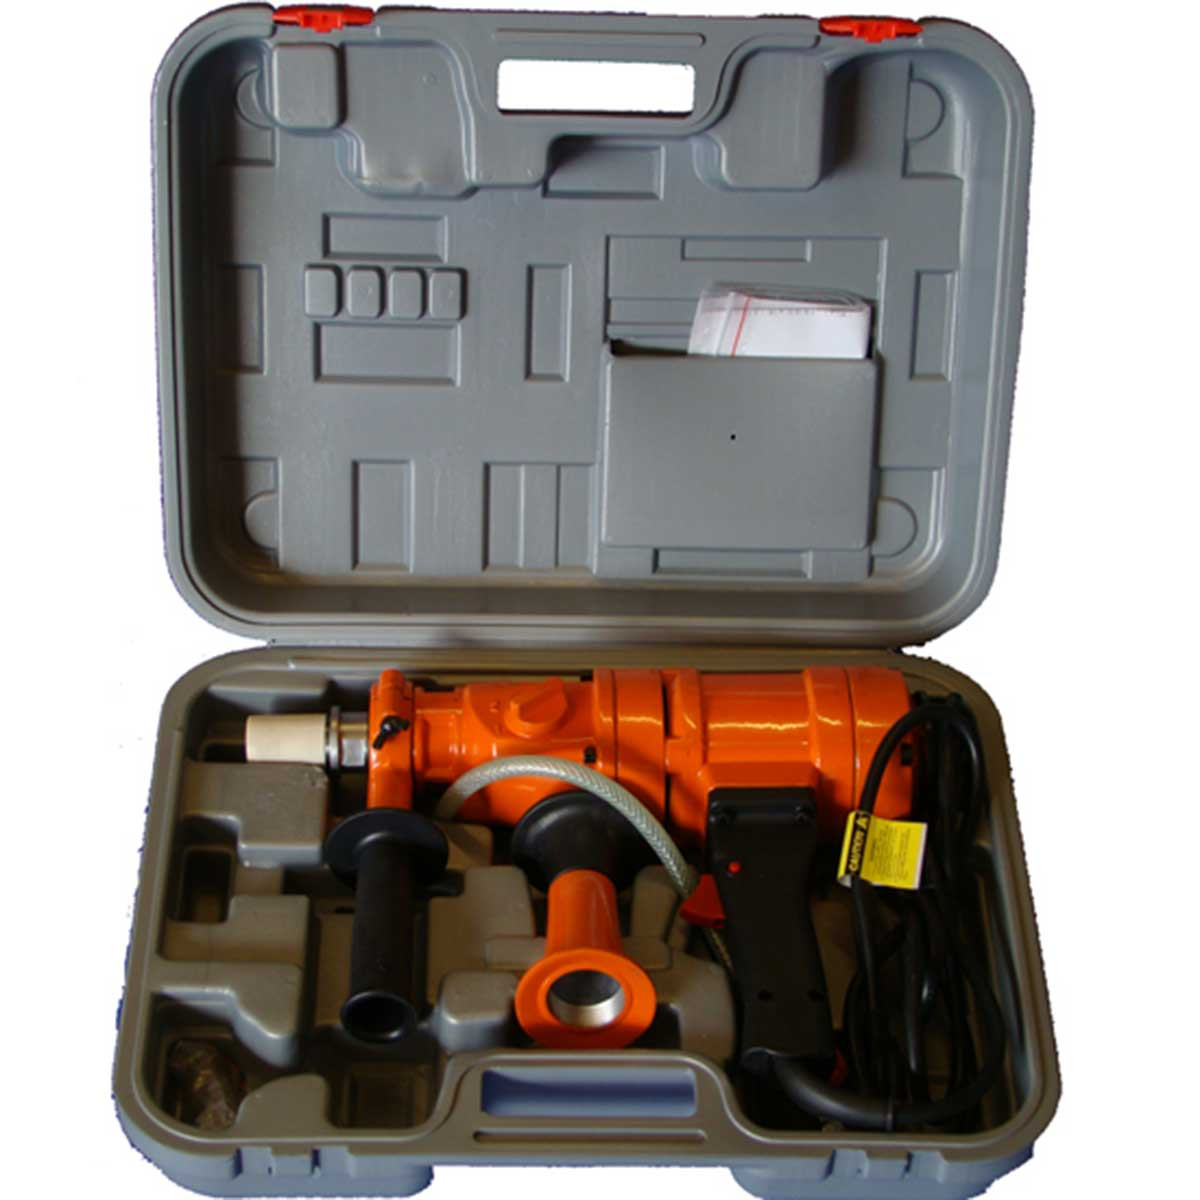 K802 Kor-It 3 Speed Core Drill case